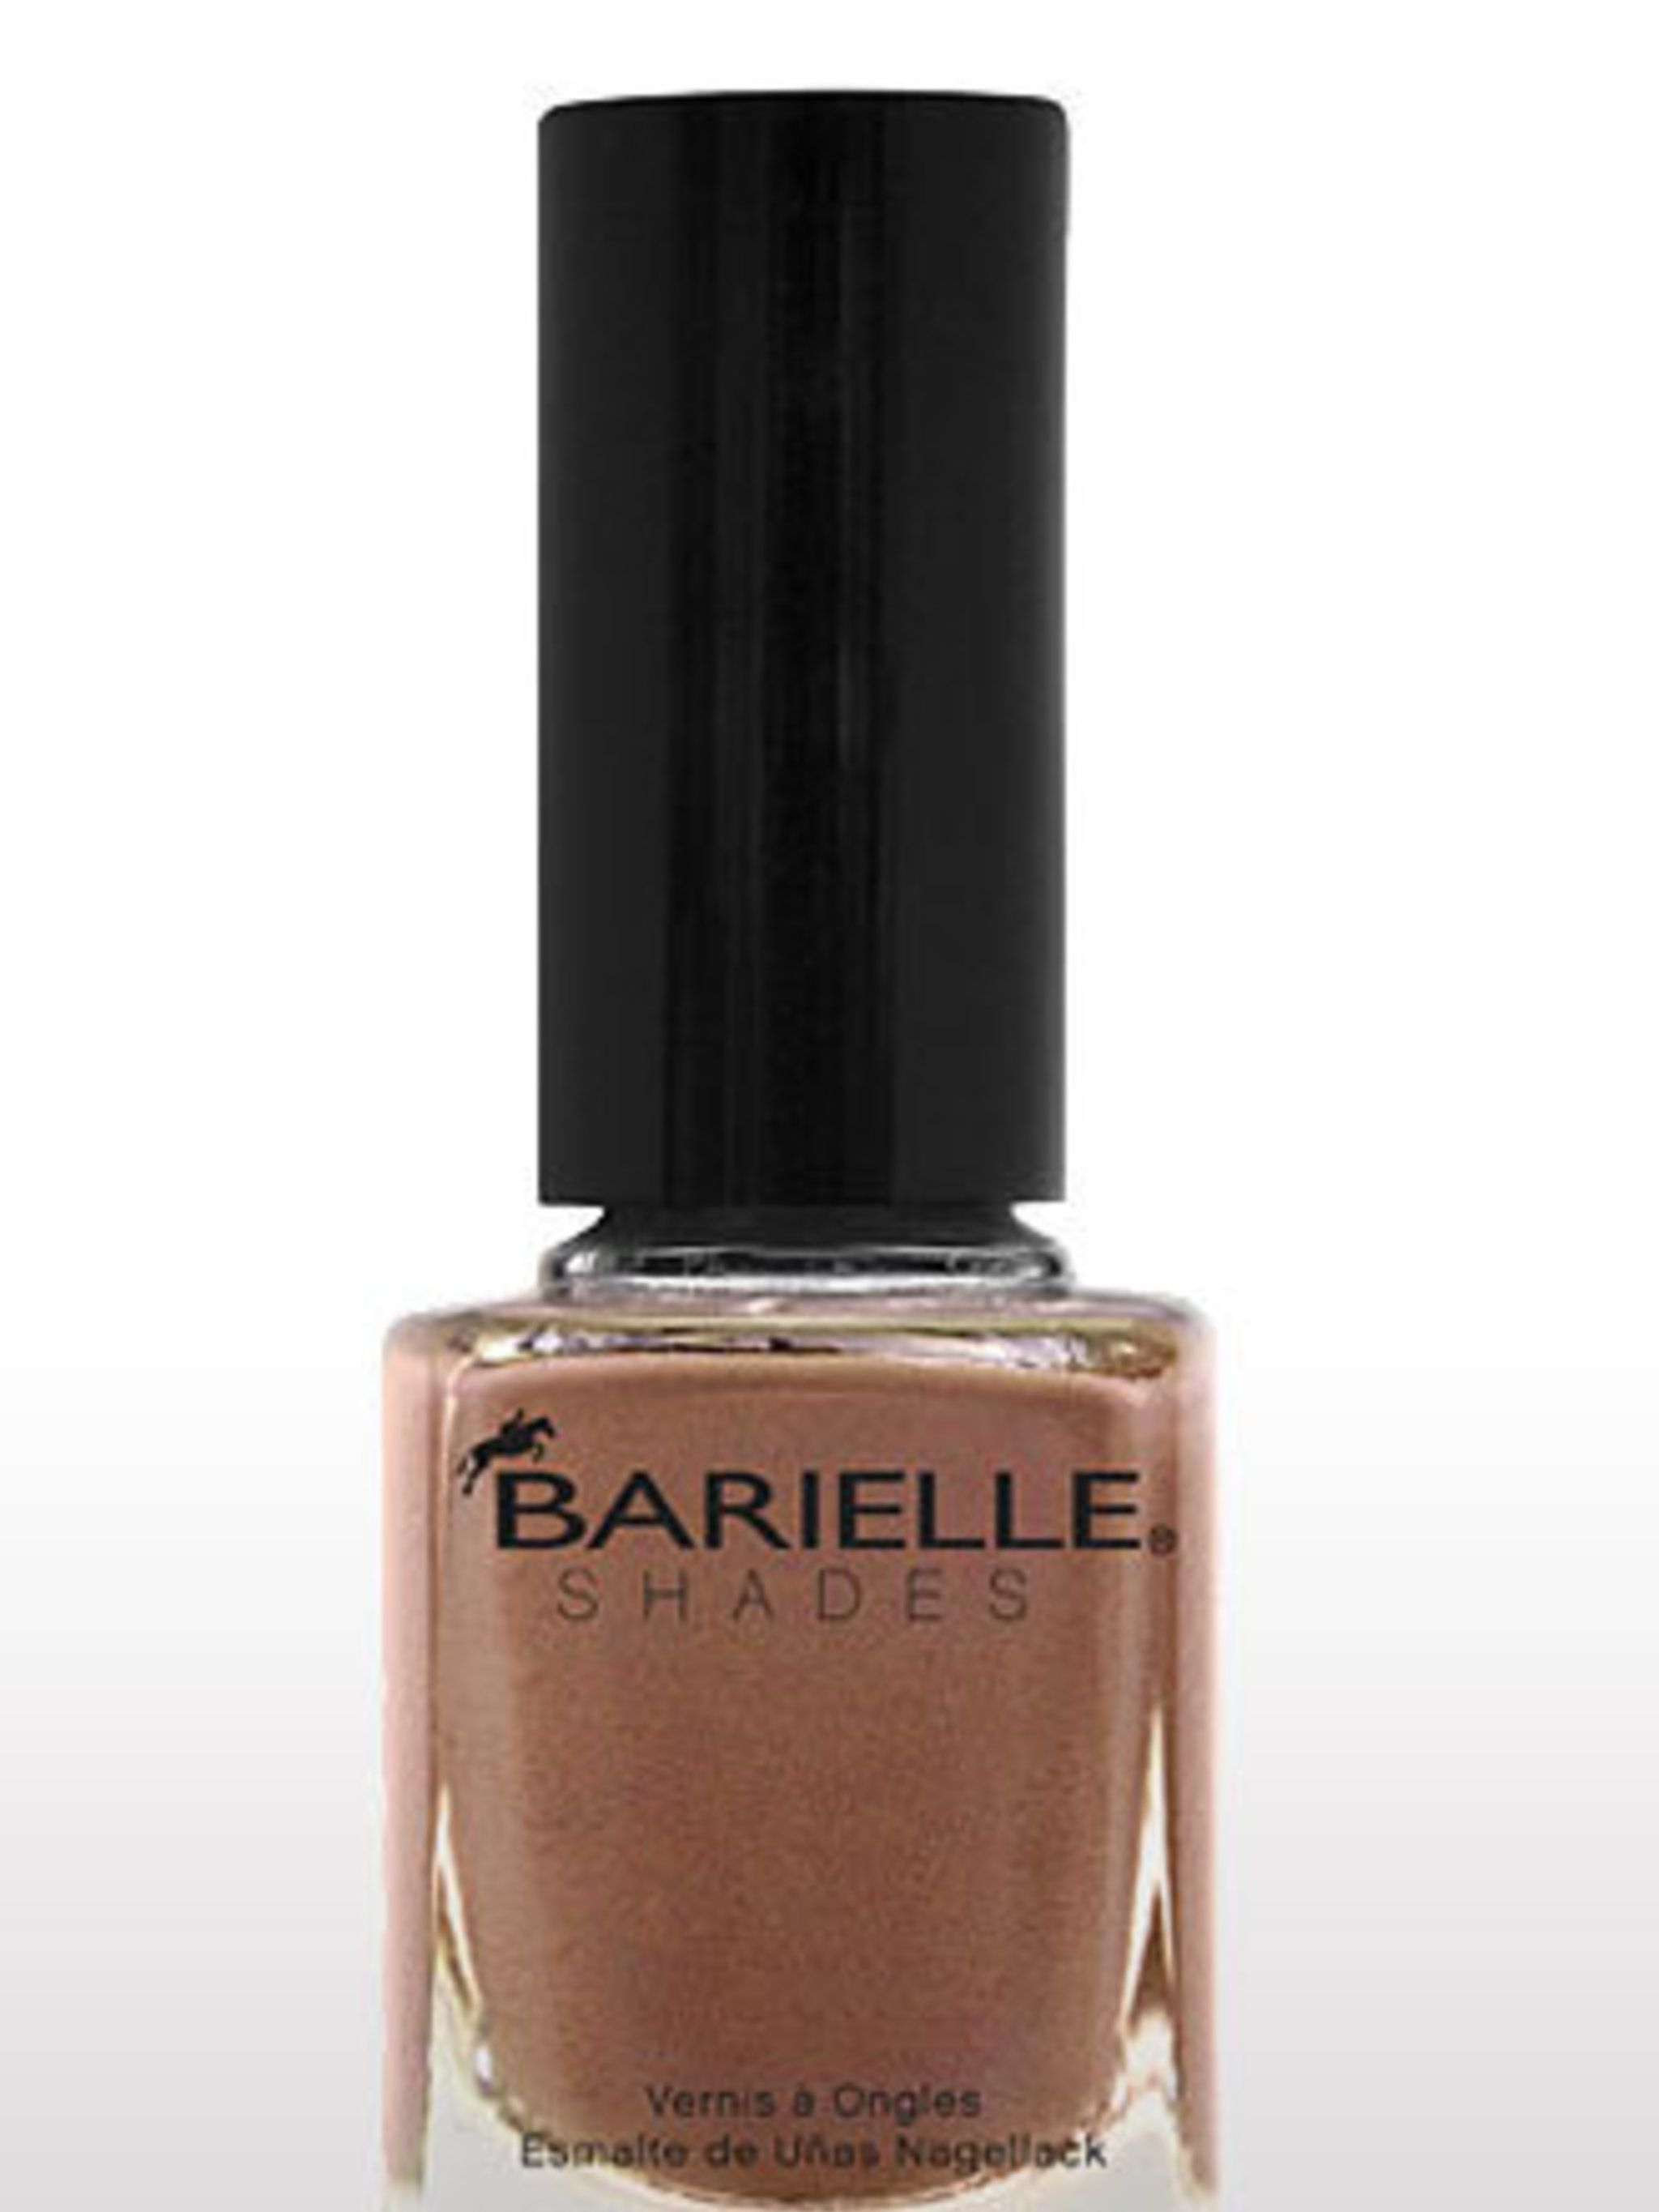 "<p><a href=""http://www.barielle.co.uk/product_p/5097.htm"">Barielle Shades</a> nail polish in Cashmere or Loose Me, £8</p>"